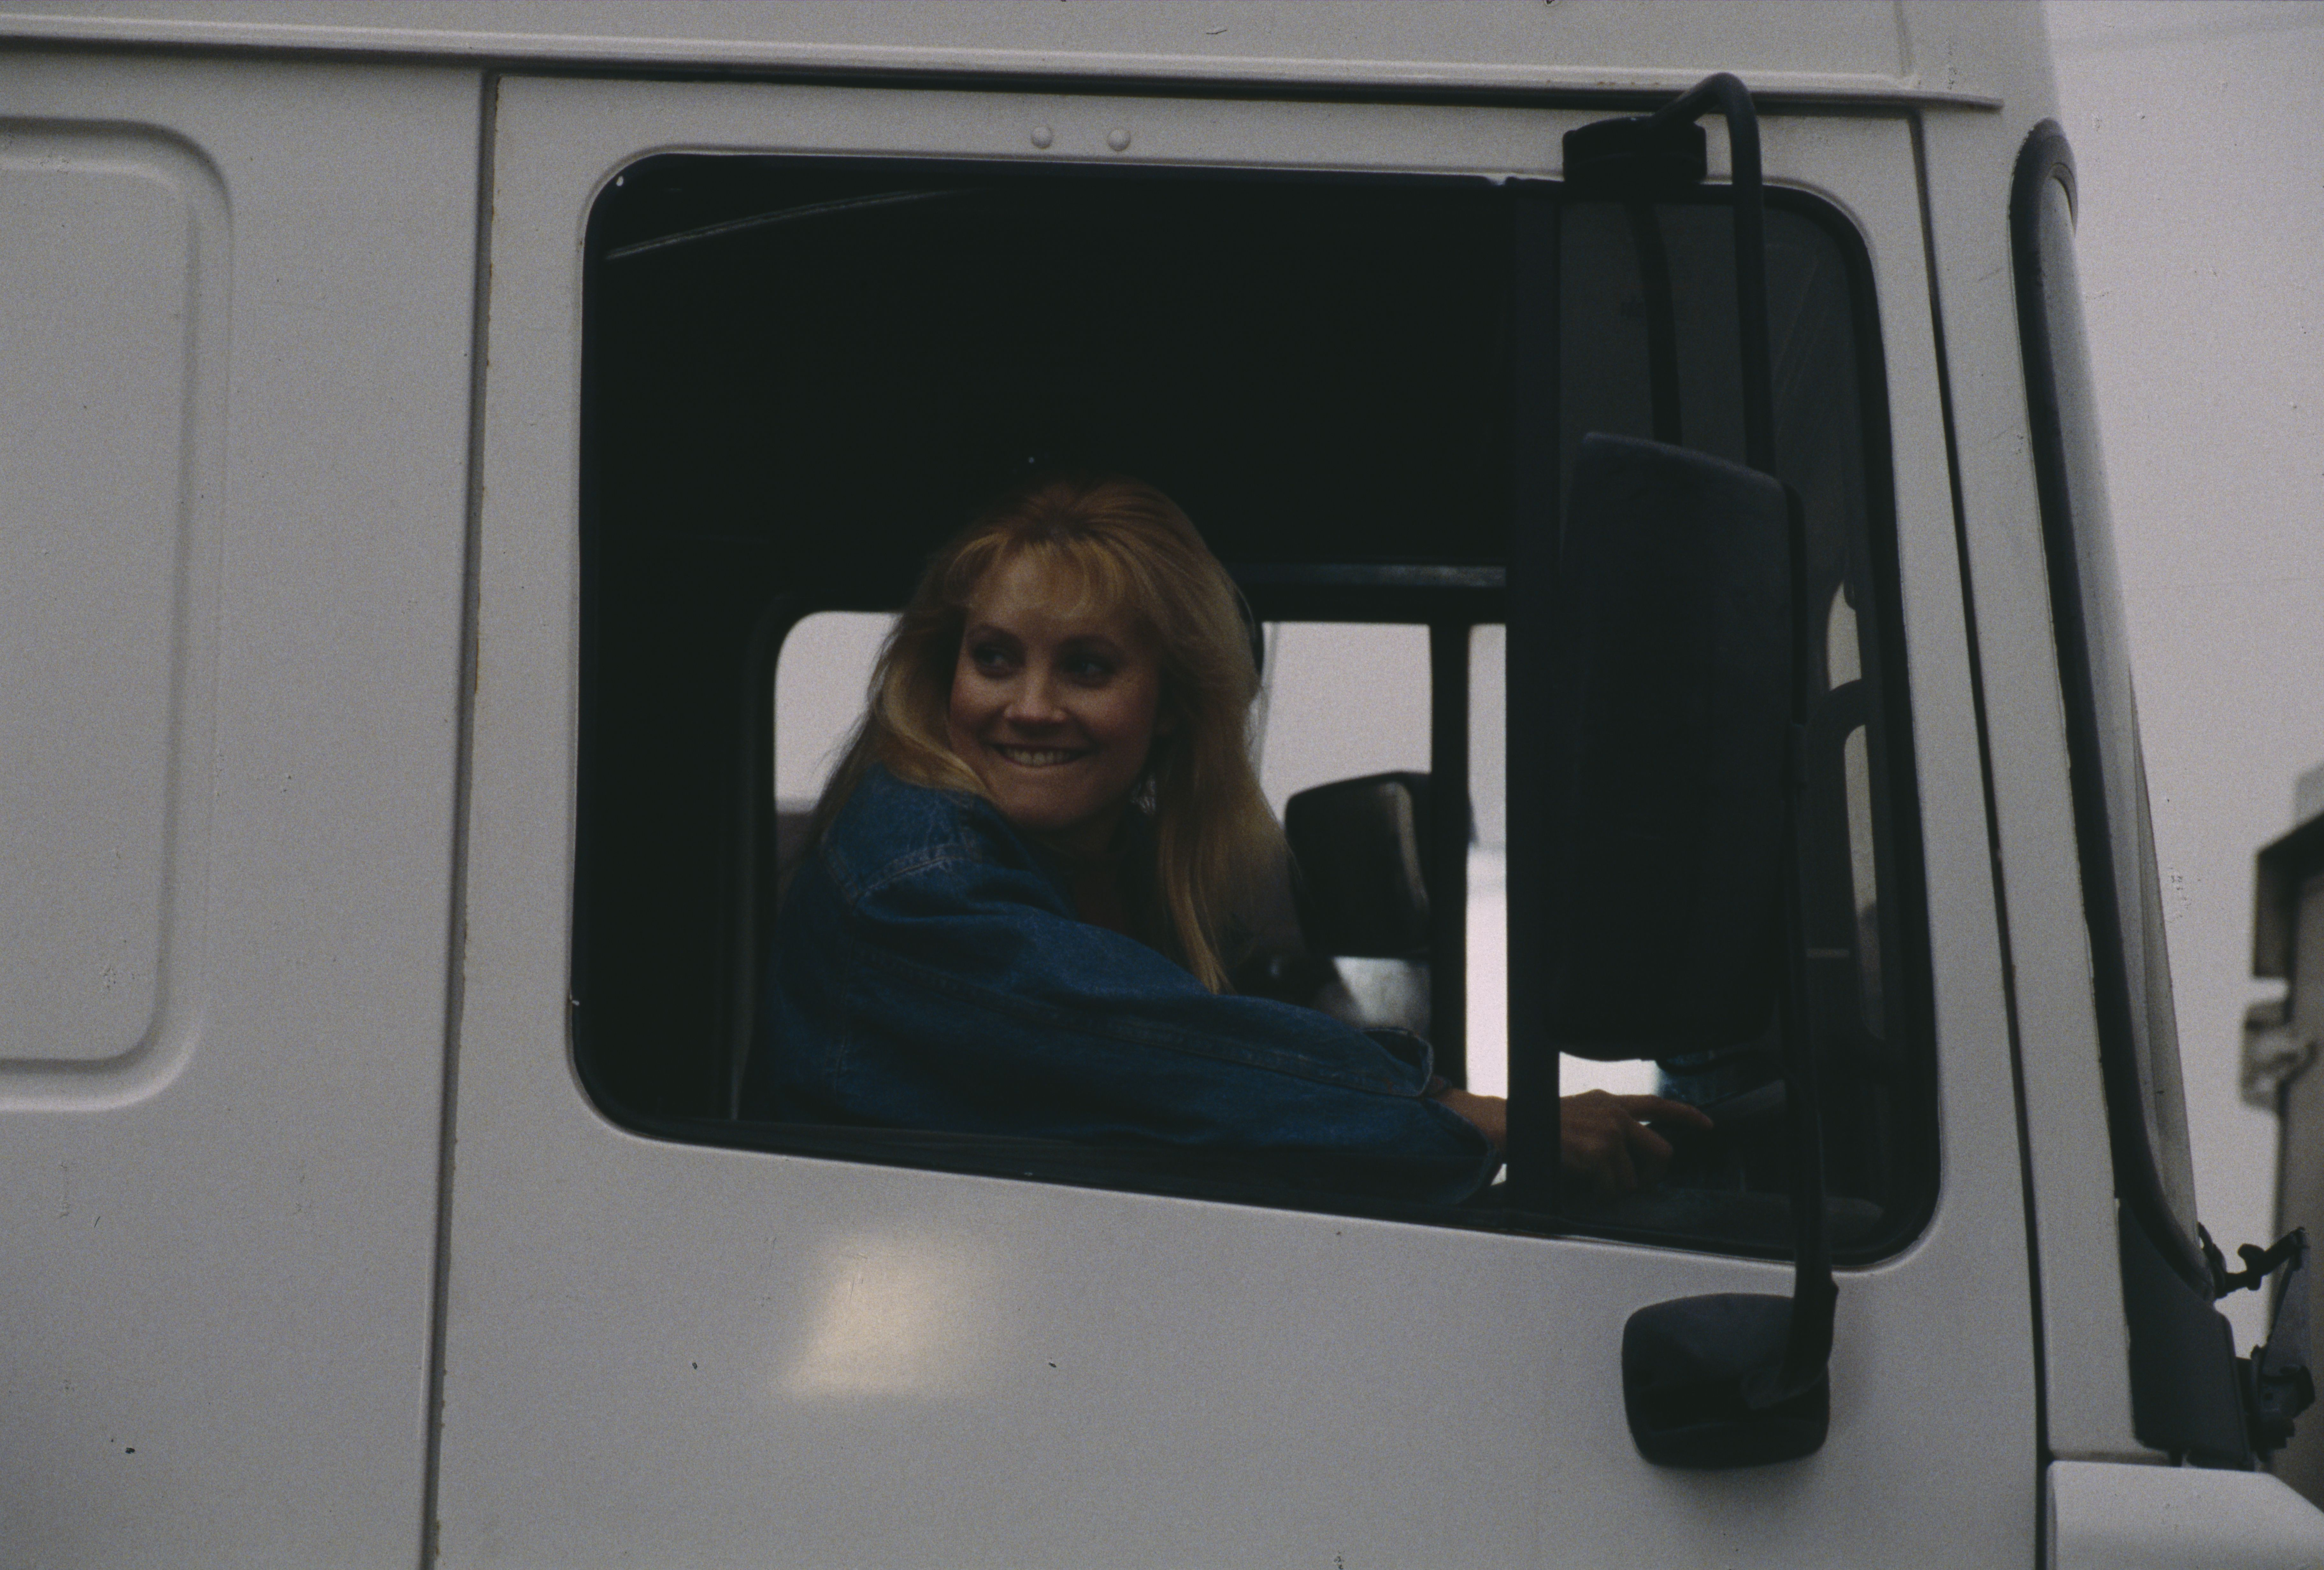 Editorial use only Mandatory Credit: Photo by ITV/Shutterstock (8042753a) Malandra Burrows (as Kathy Tate), as Kathy convinces Chris she can drive a HGV (Ep 1754 - 8th April 1993) 'Emmerdale' TV Series - 08 Apr 1993 Emmerdale Farm is a long-running British soap opera set in Emmerdale, a fictional village in the Yorkshire Dales. Created by Kevin Laffan, it first broadcast on 16 October 1972 and produced by ITV Yorkshire.